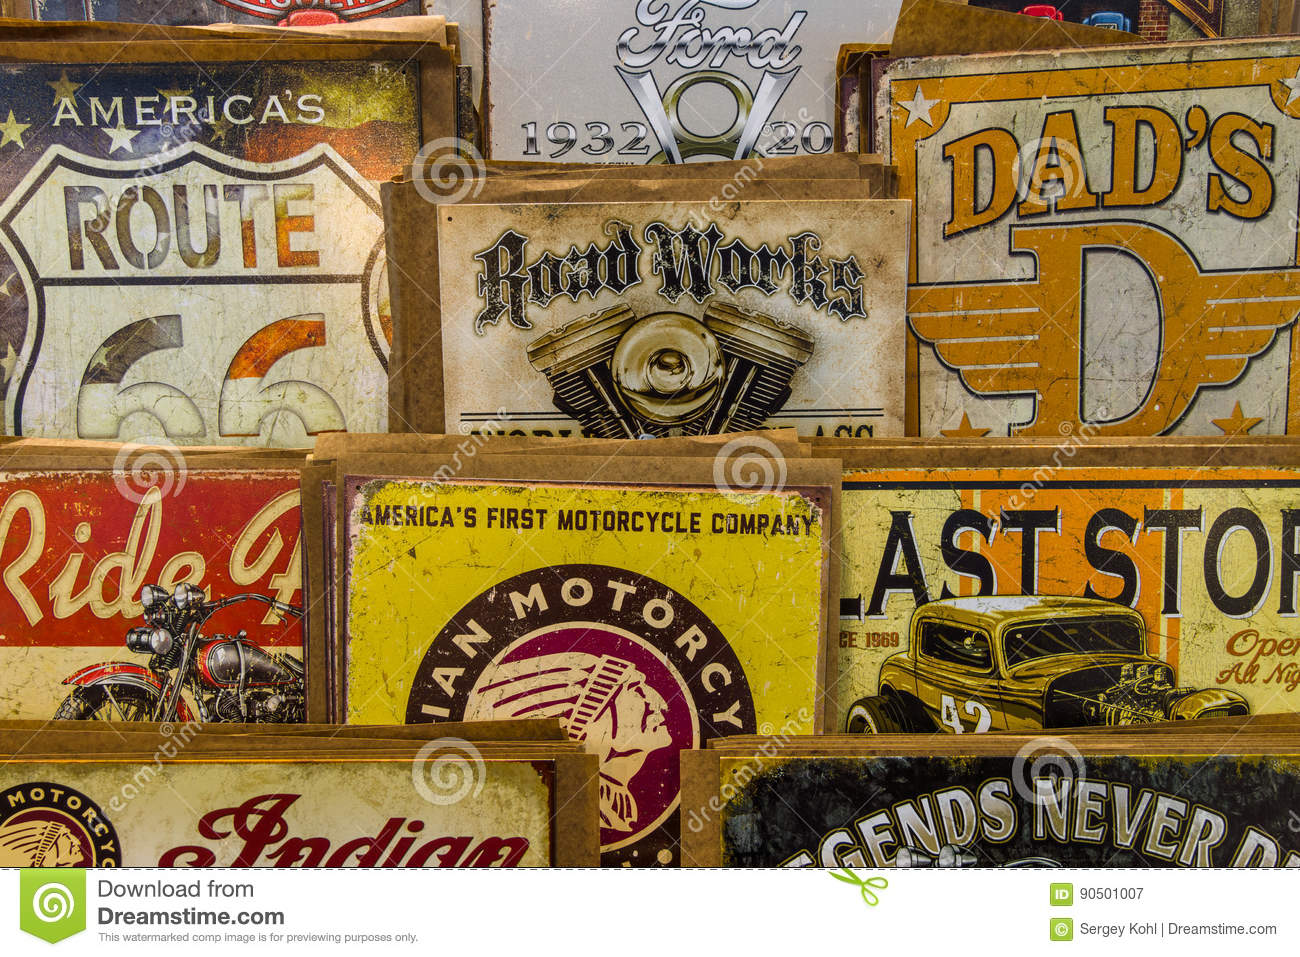 Background of vintage advertising signs.